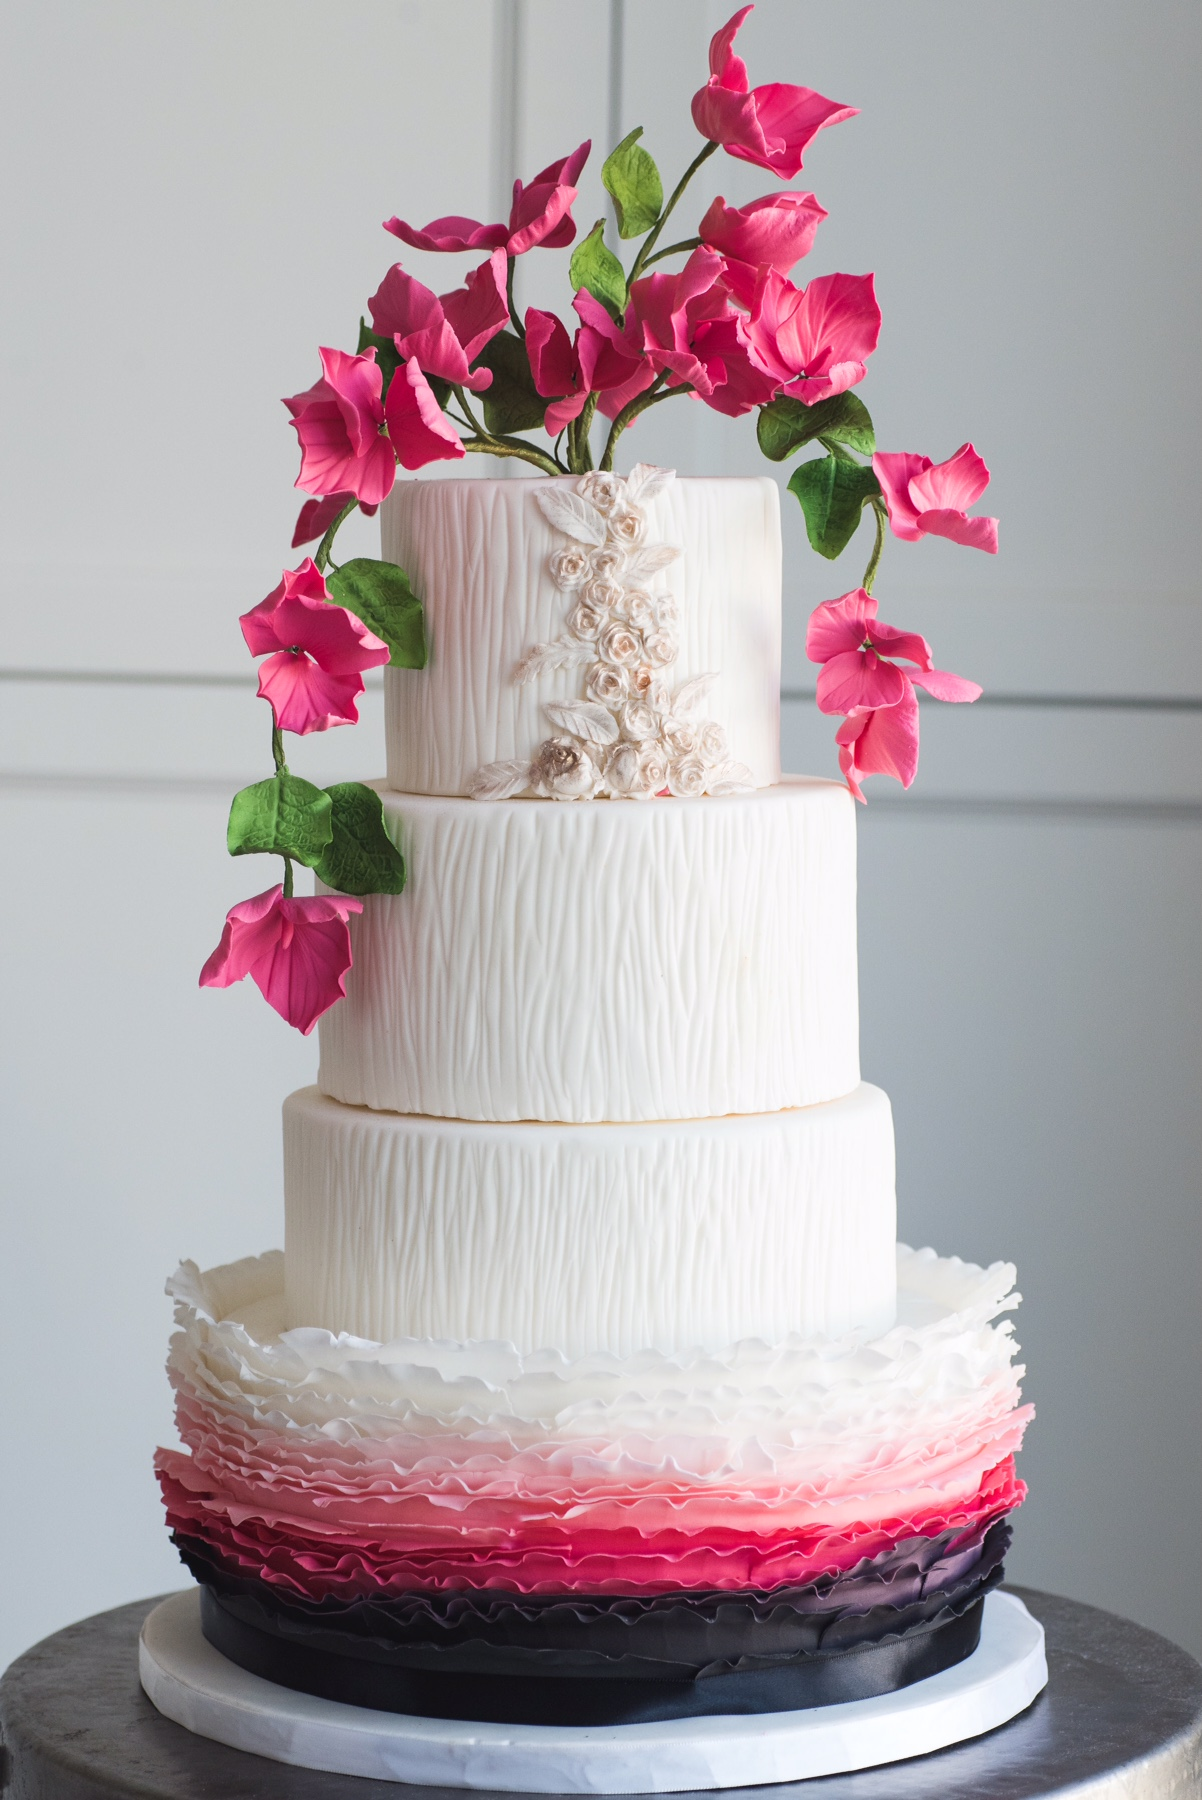 White wedding cake with pink and black ombre ruffles